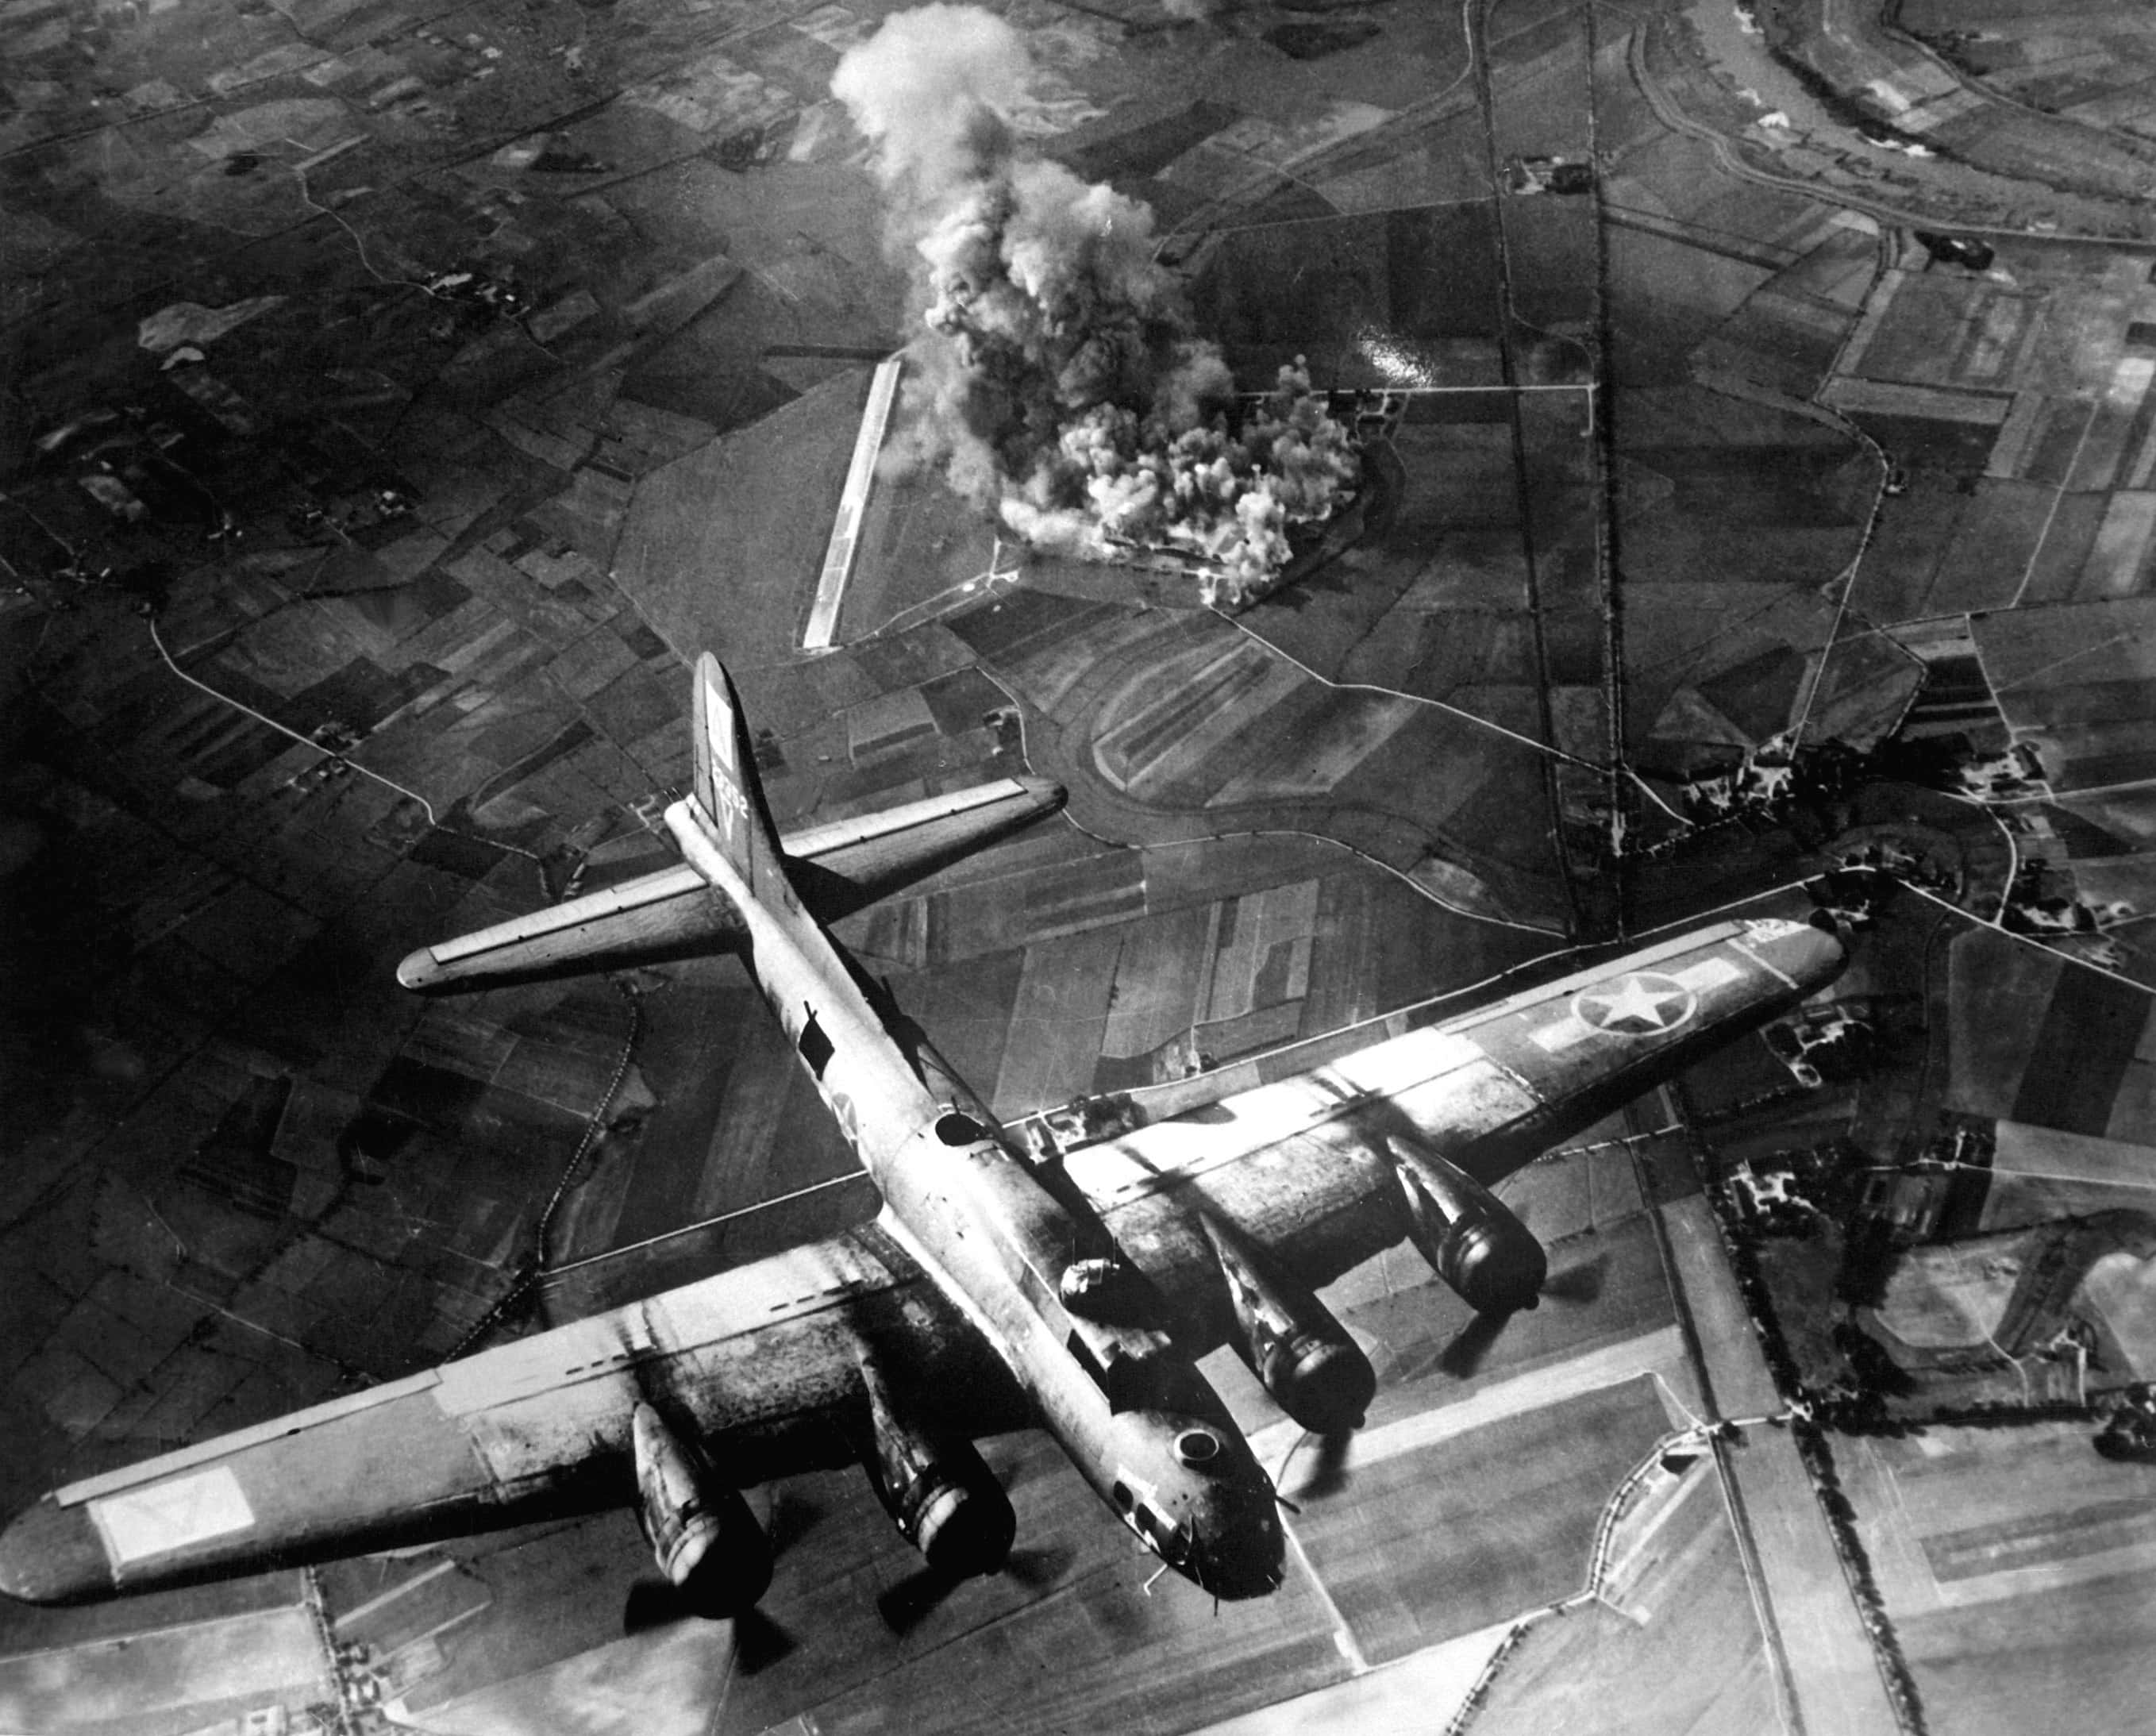 8th AF Bombing Marienburg min image